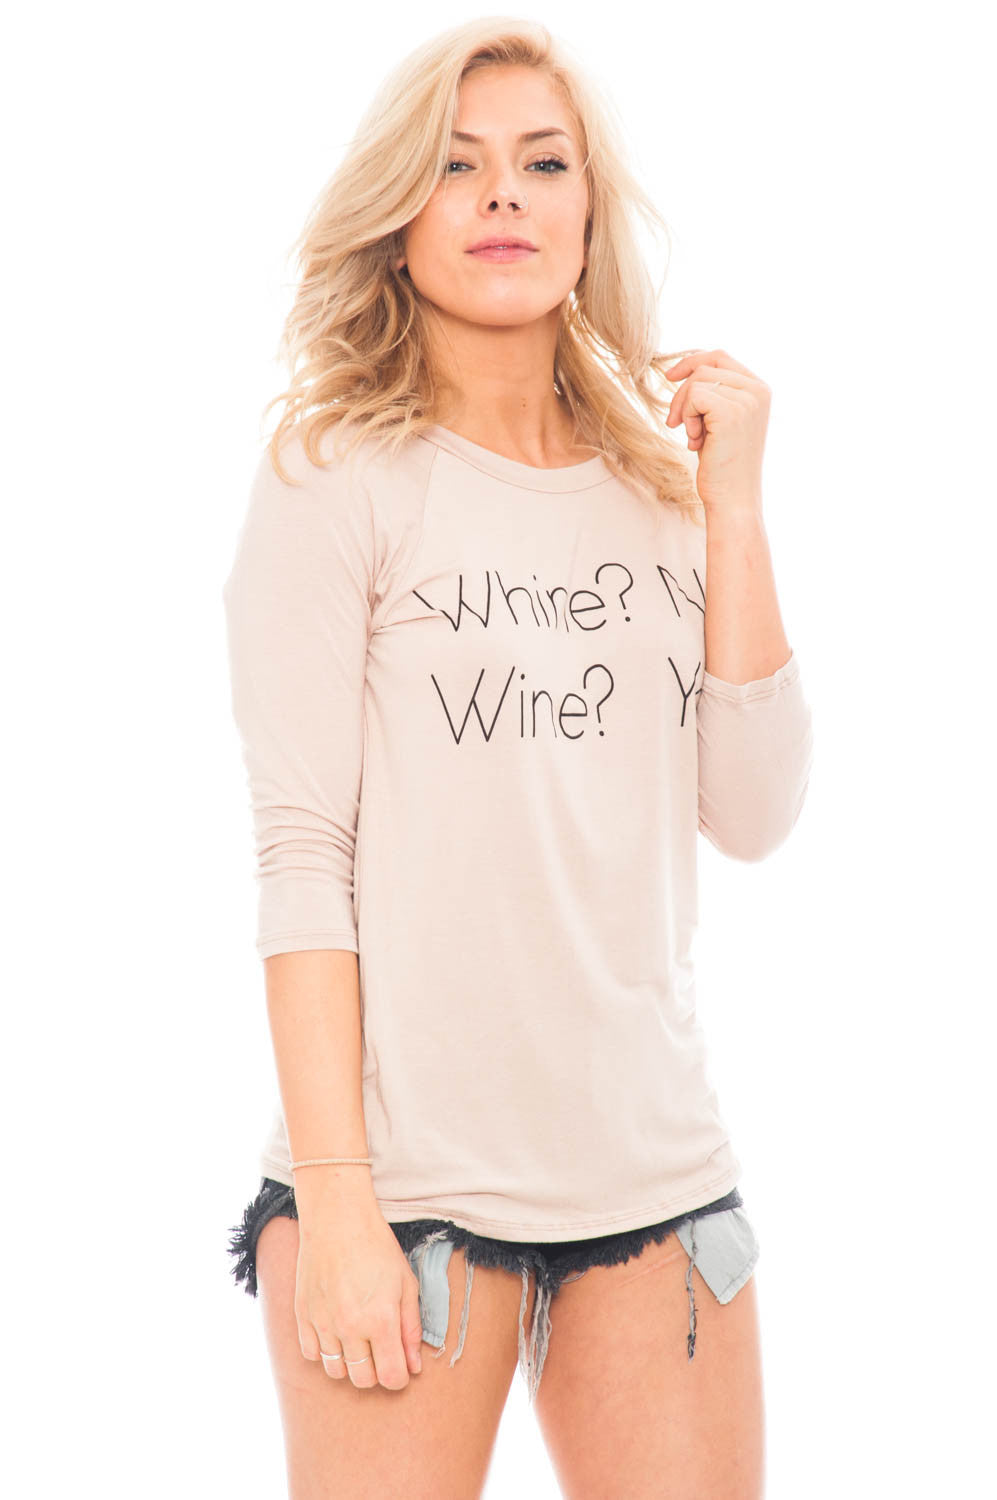 Tee - Whine? No. Wine? Yes.